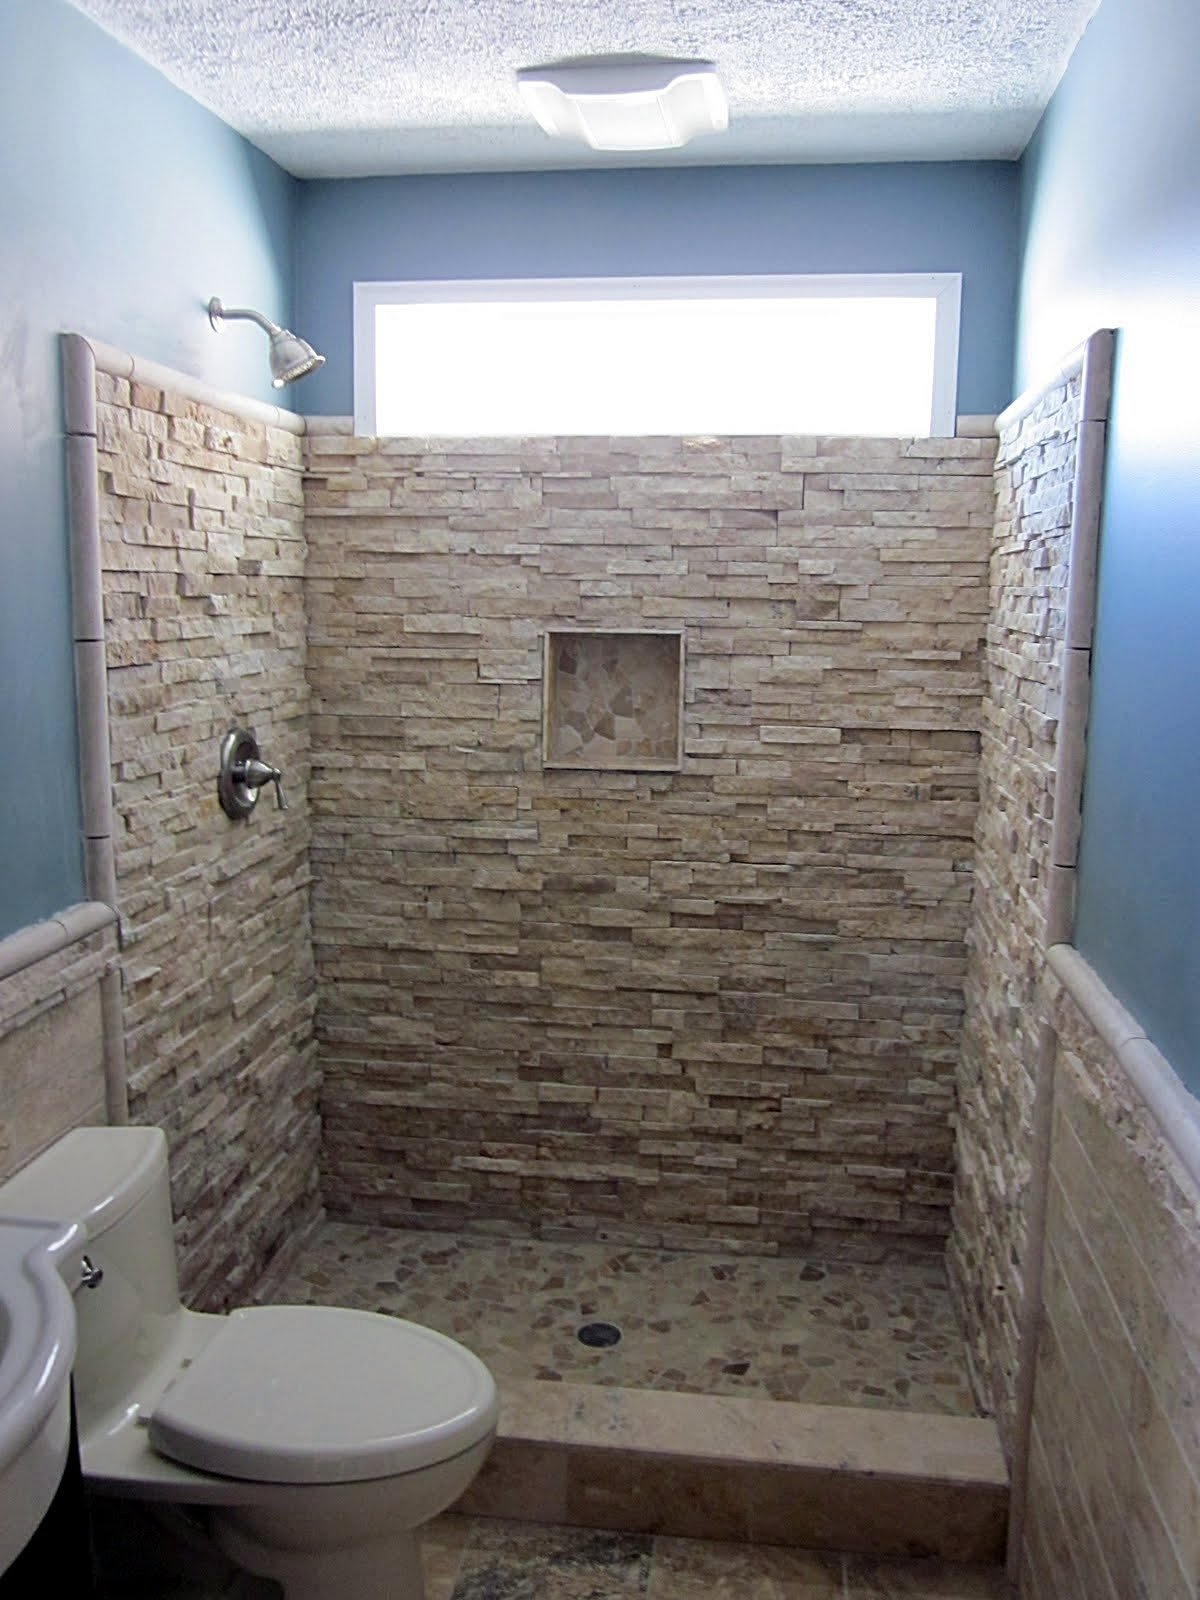 10 Awesome Bathroom Tubs And Showers Ideas small bath tub shower trends popular 2014 youtube 2020